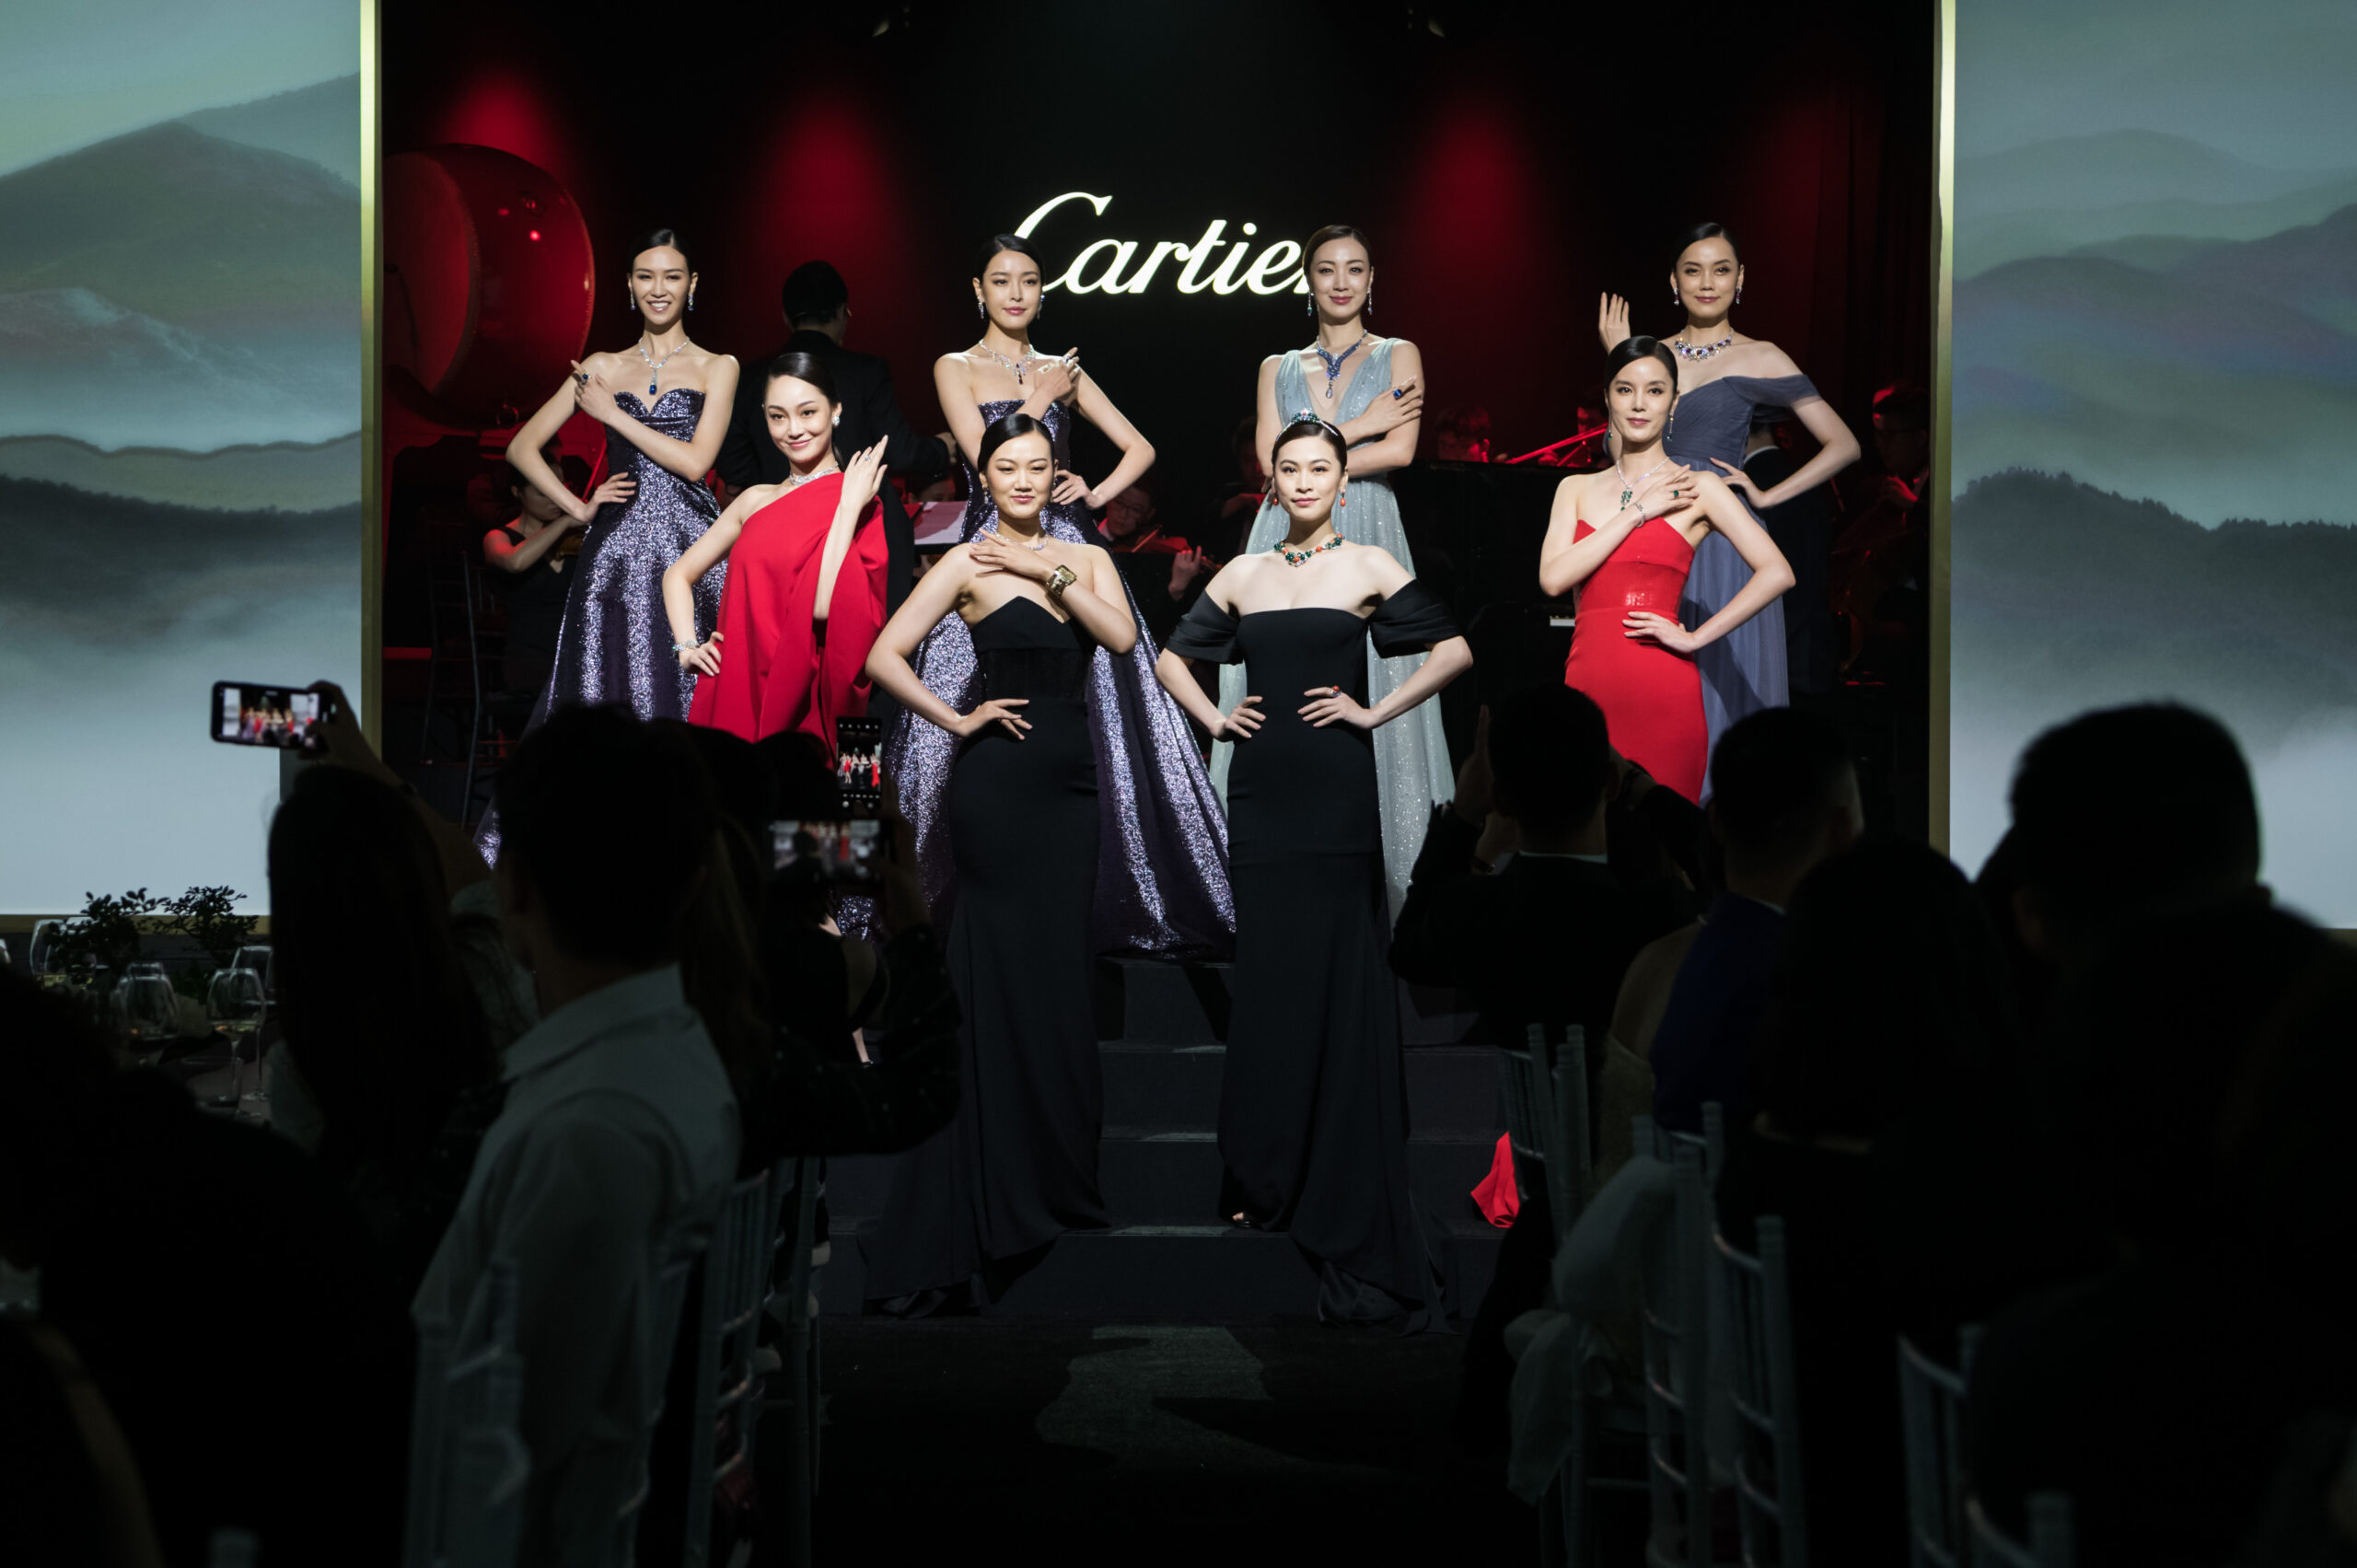 Cartier P66 Boutique Re-opening & Gala Dinner July 31st Shanghai – 4